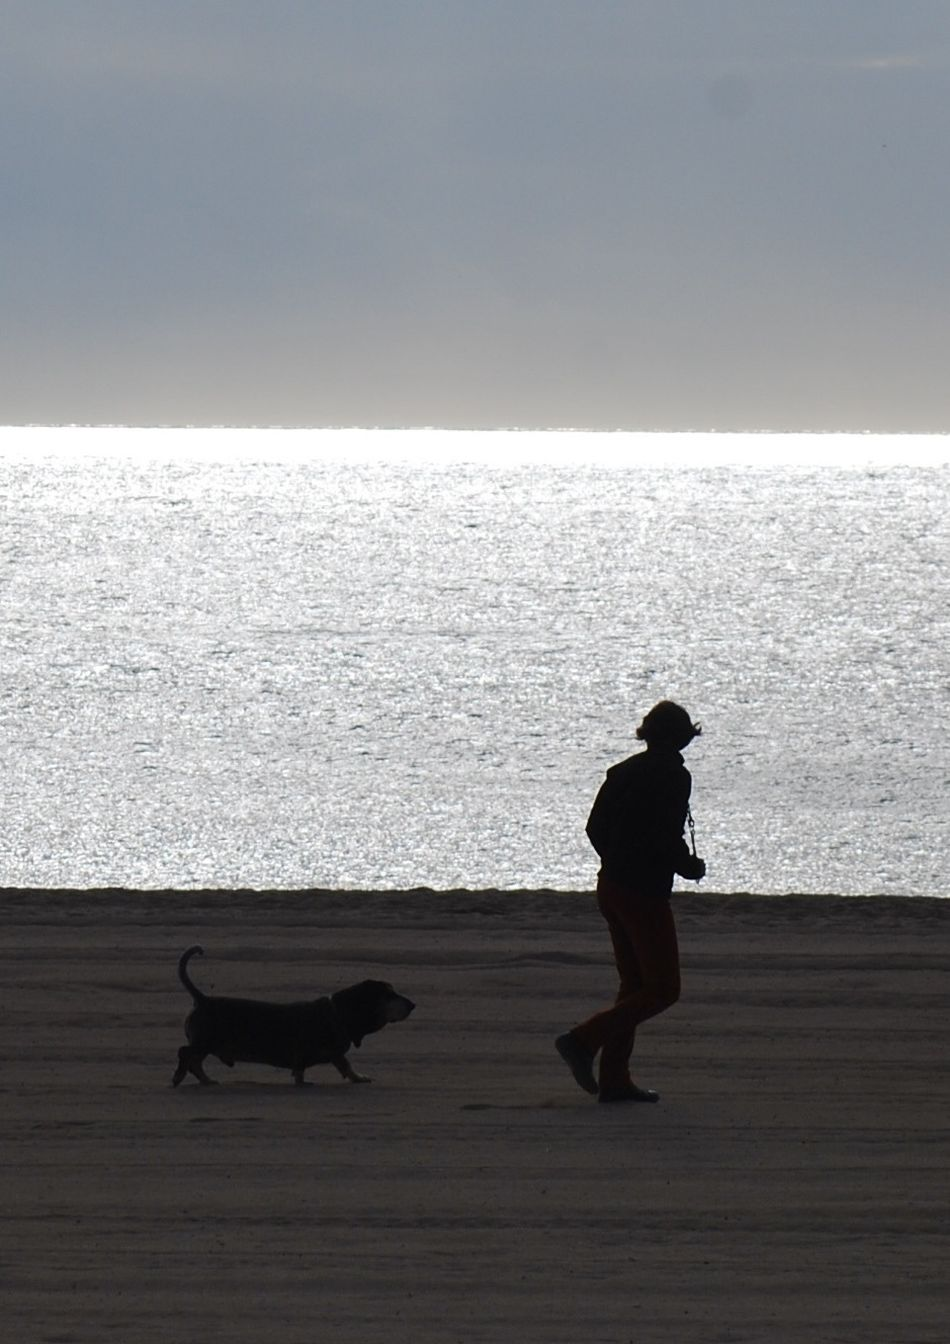 Sunset Silhouettes Her & Dog On The Beach